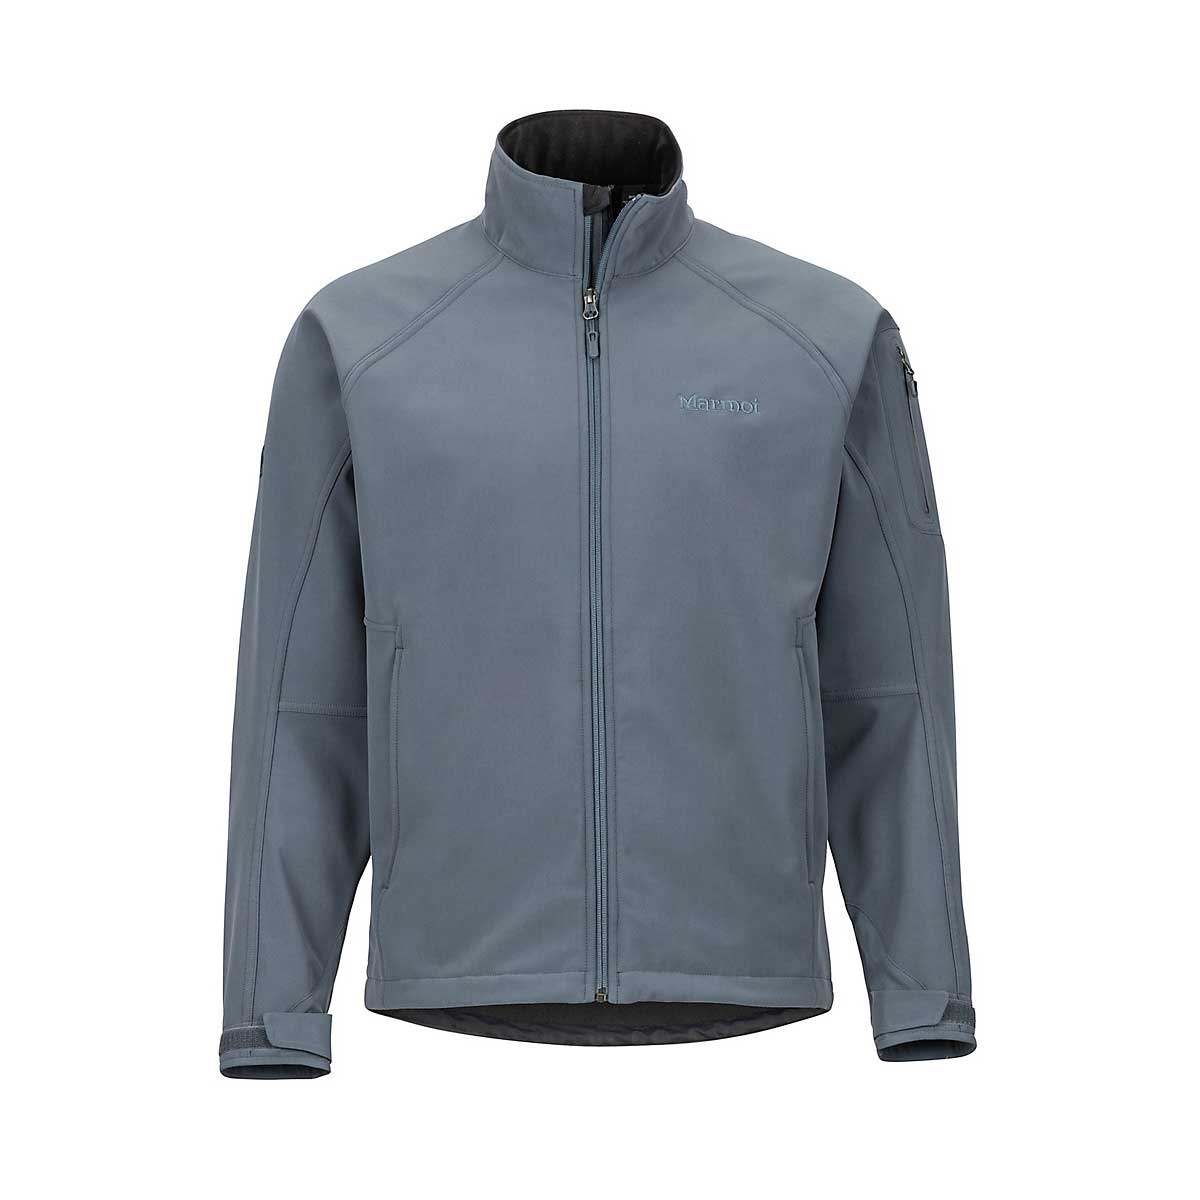 Marmot Men's Gravity Jacket in Steel Onyx